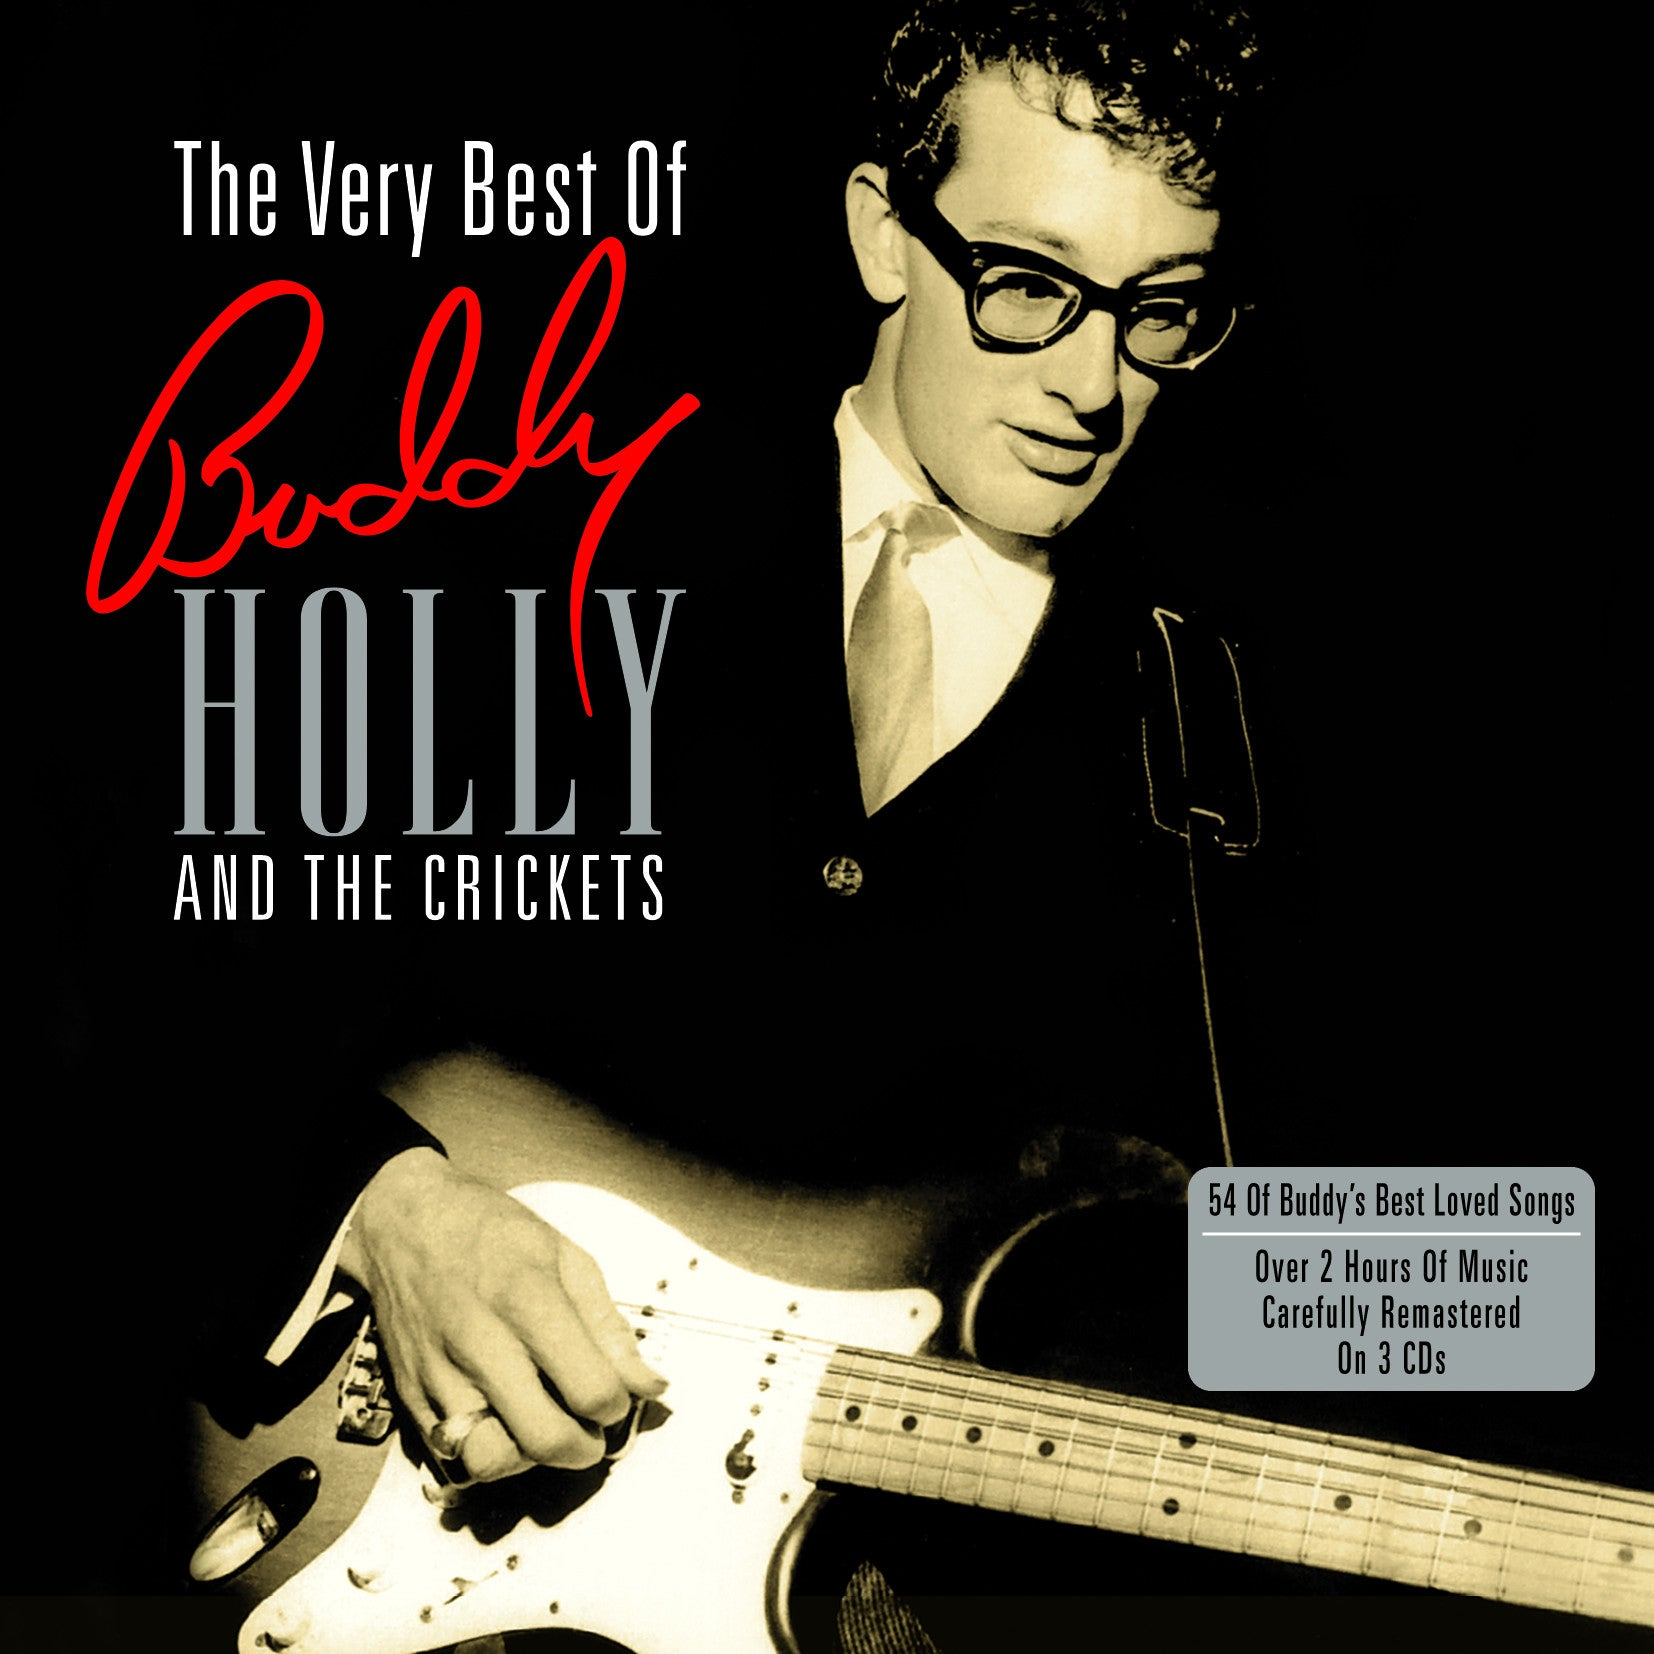 BUDDY HOLLY & THE CRICKETS - THE VERY BEST OF BUDDY HOLLY & THE CRICKETS 2LP (180 GRAM)